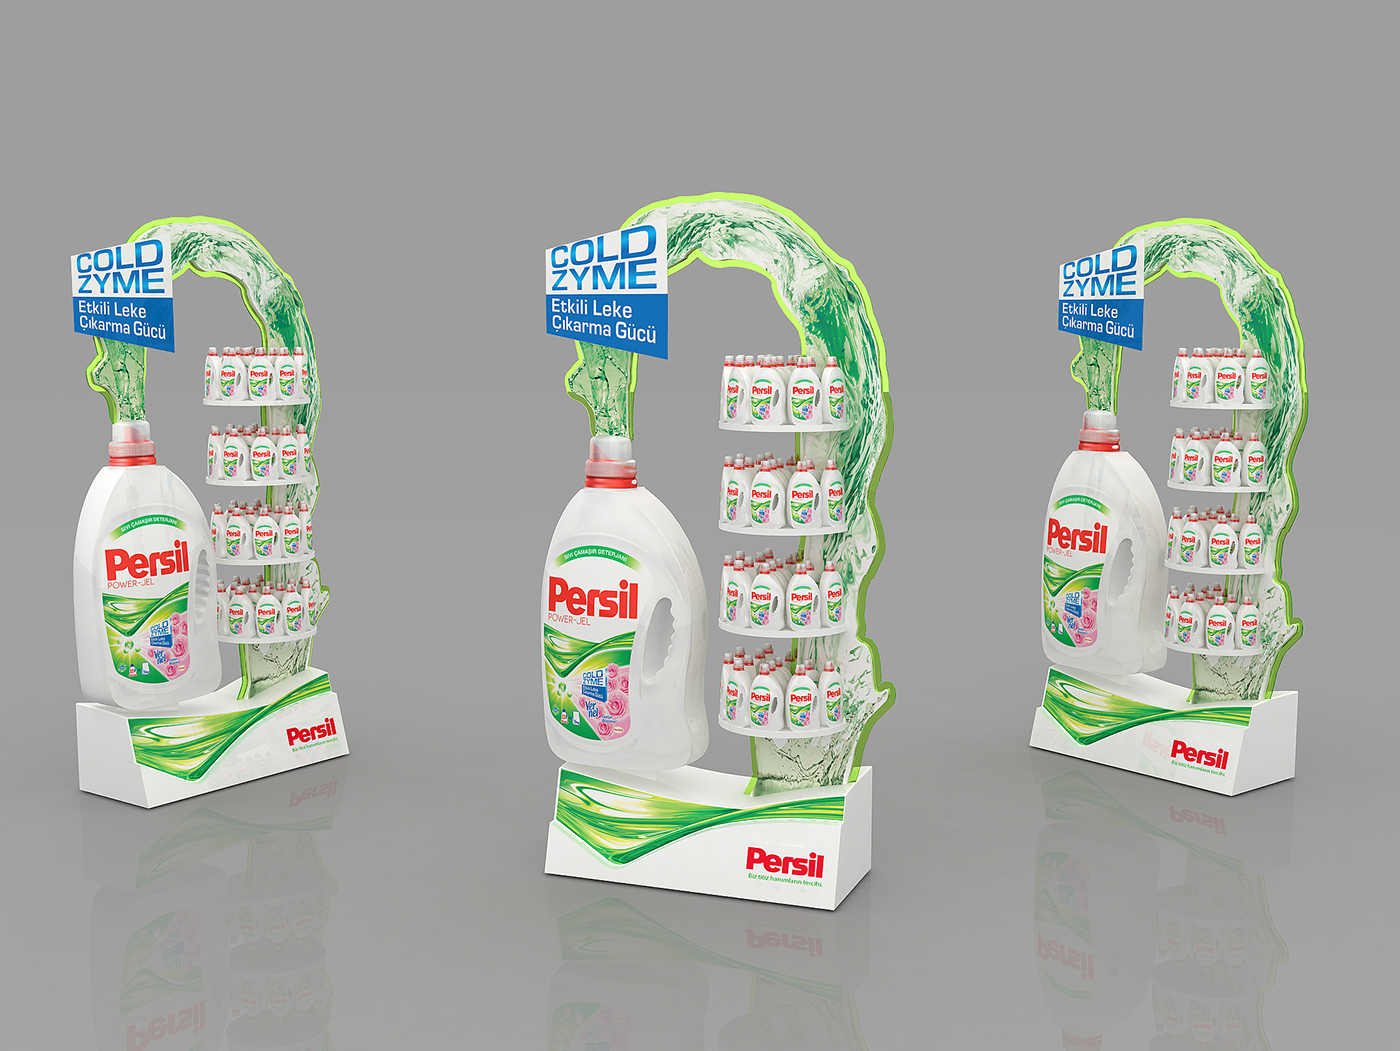 henkel persil posm on behance